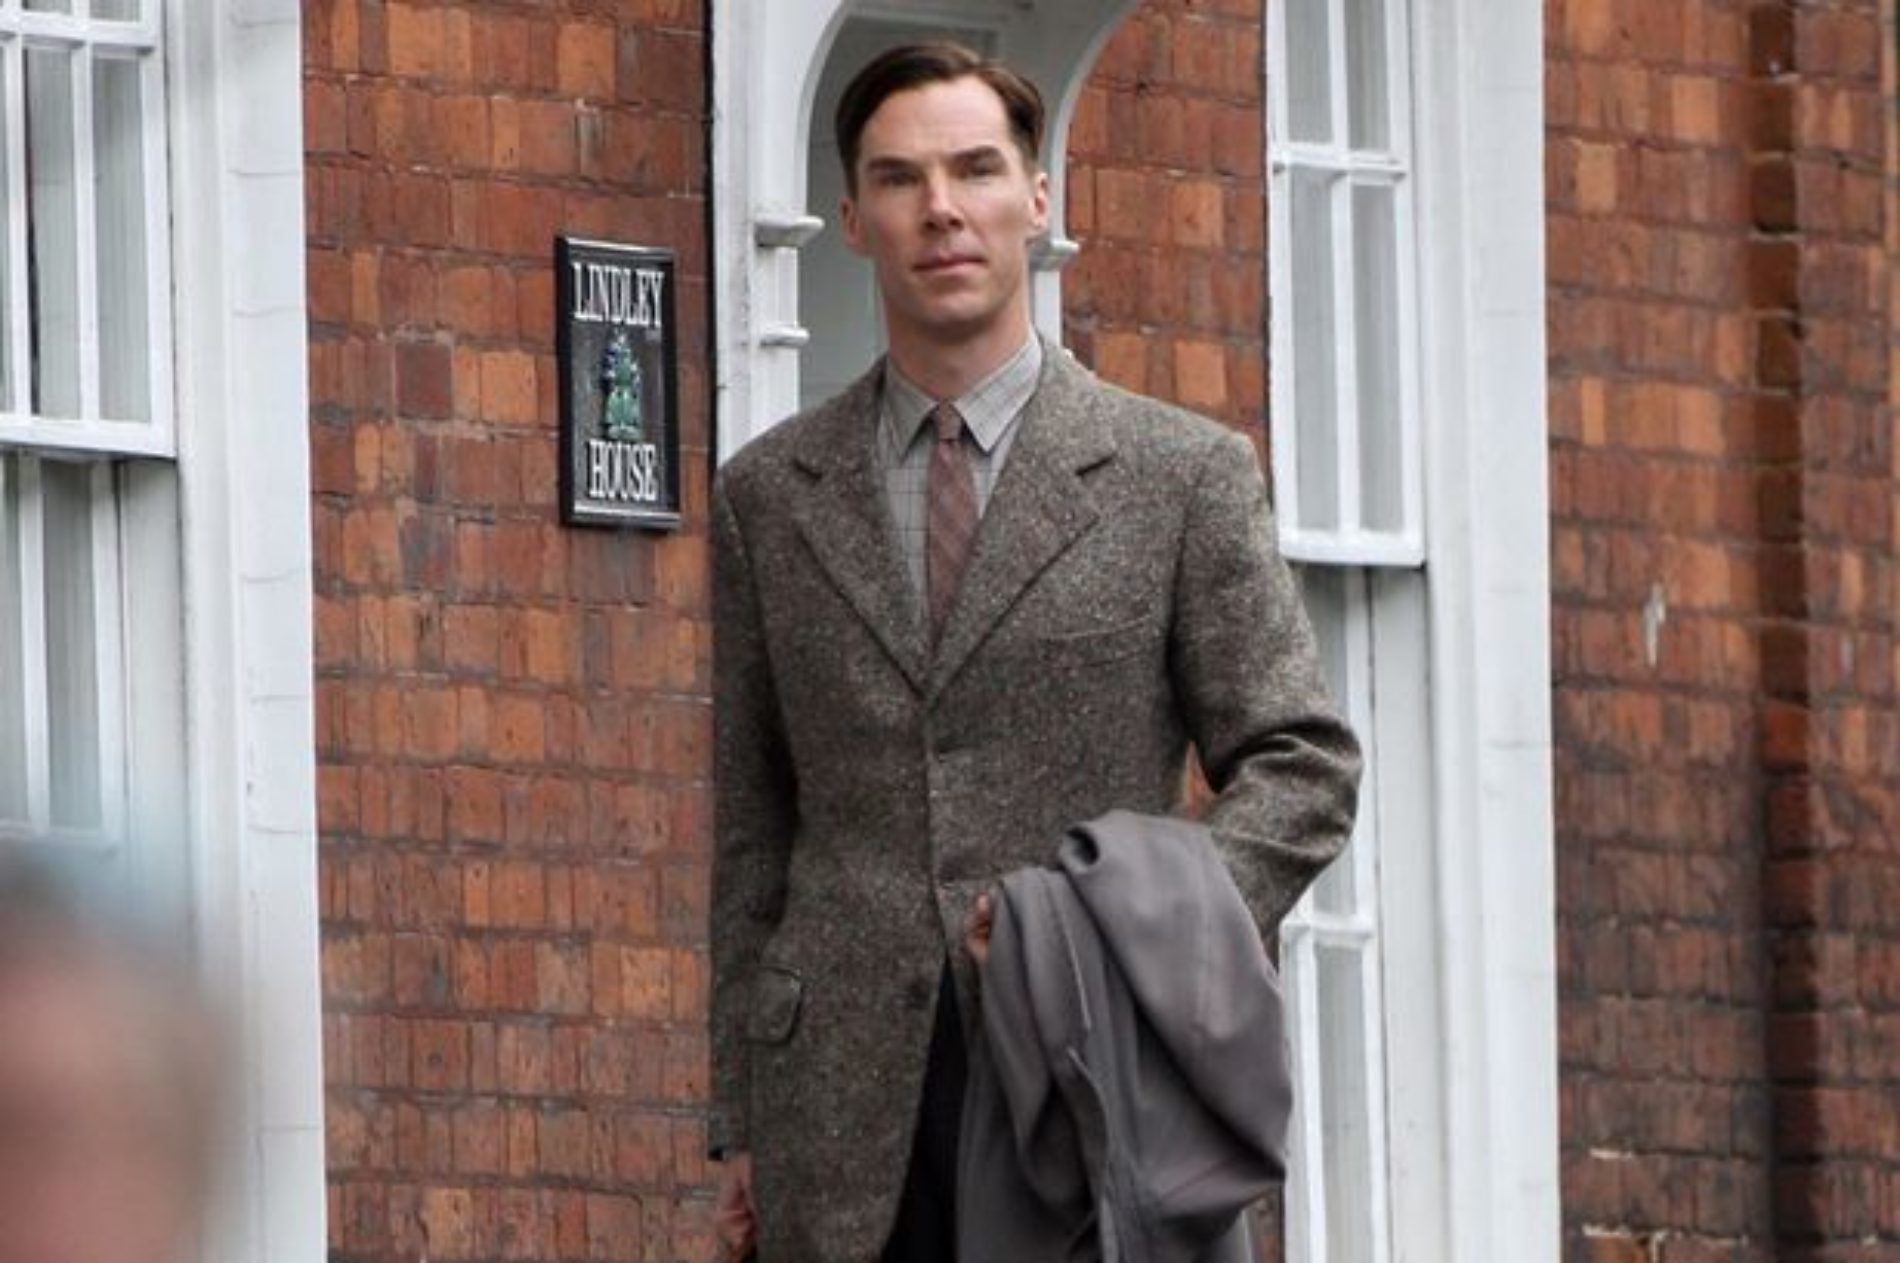 Benedict Cumberbatch Believes Alan Turing Should Be Celebrated As Gay Icon On Bank Notes